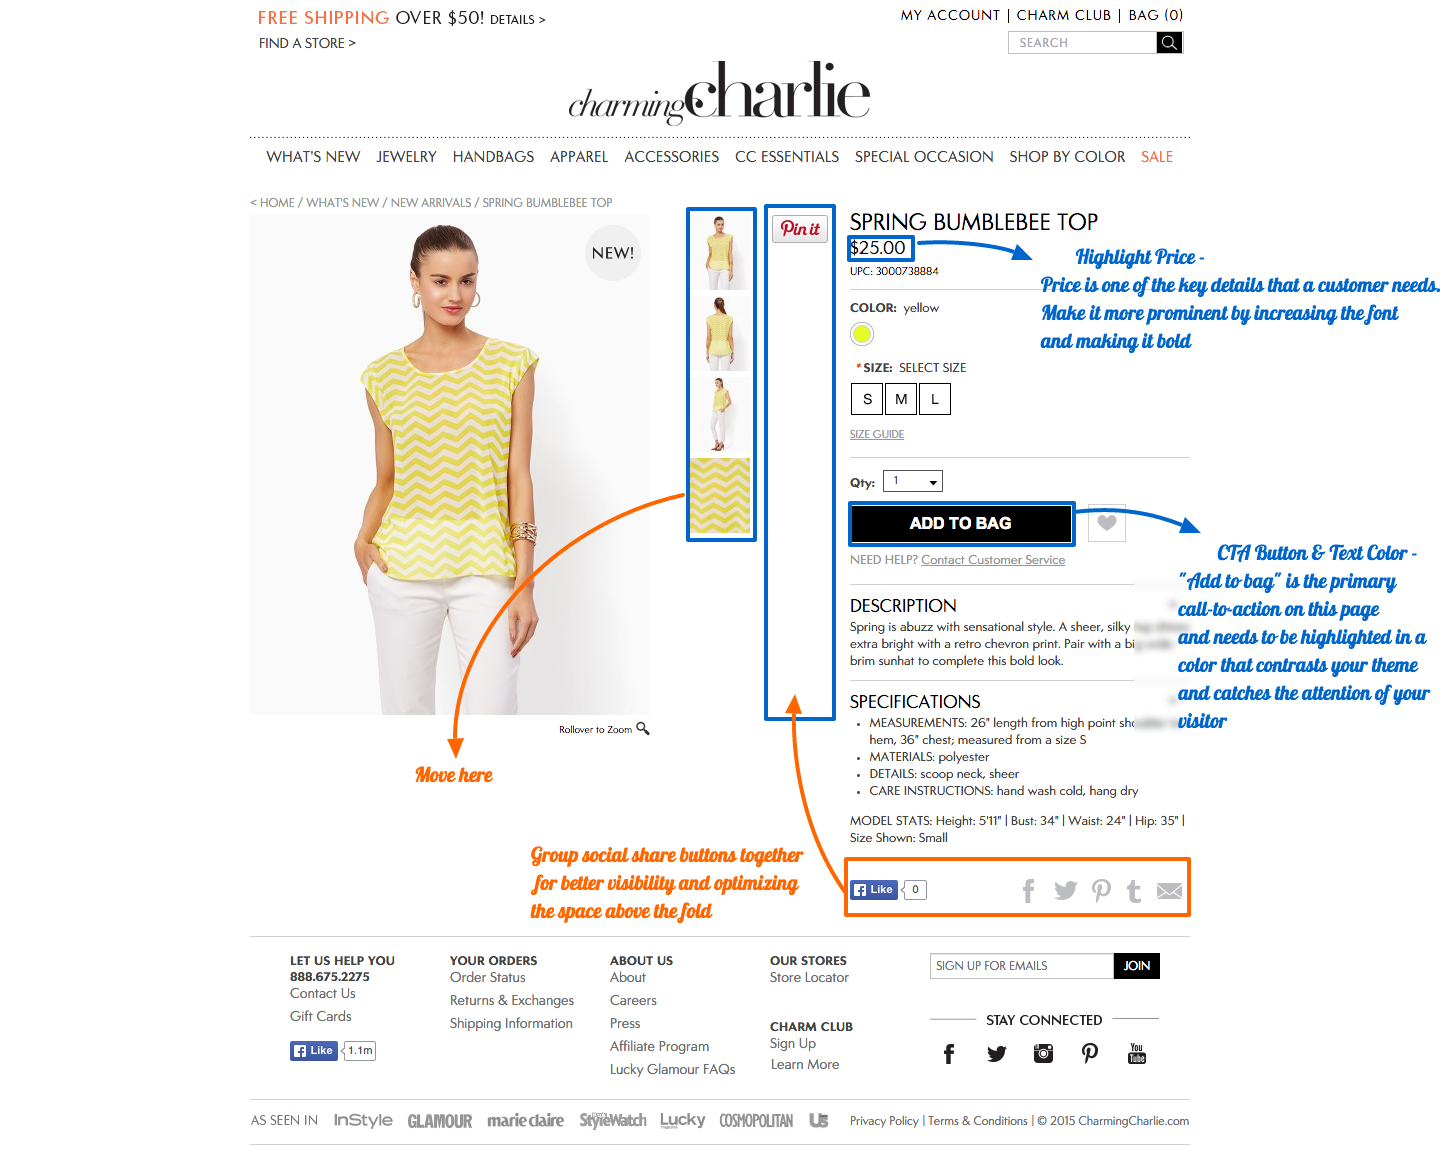 Product Page Proposed Changes